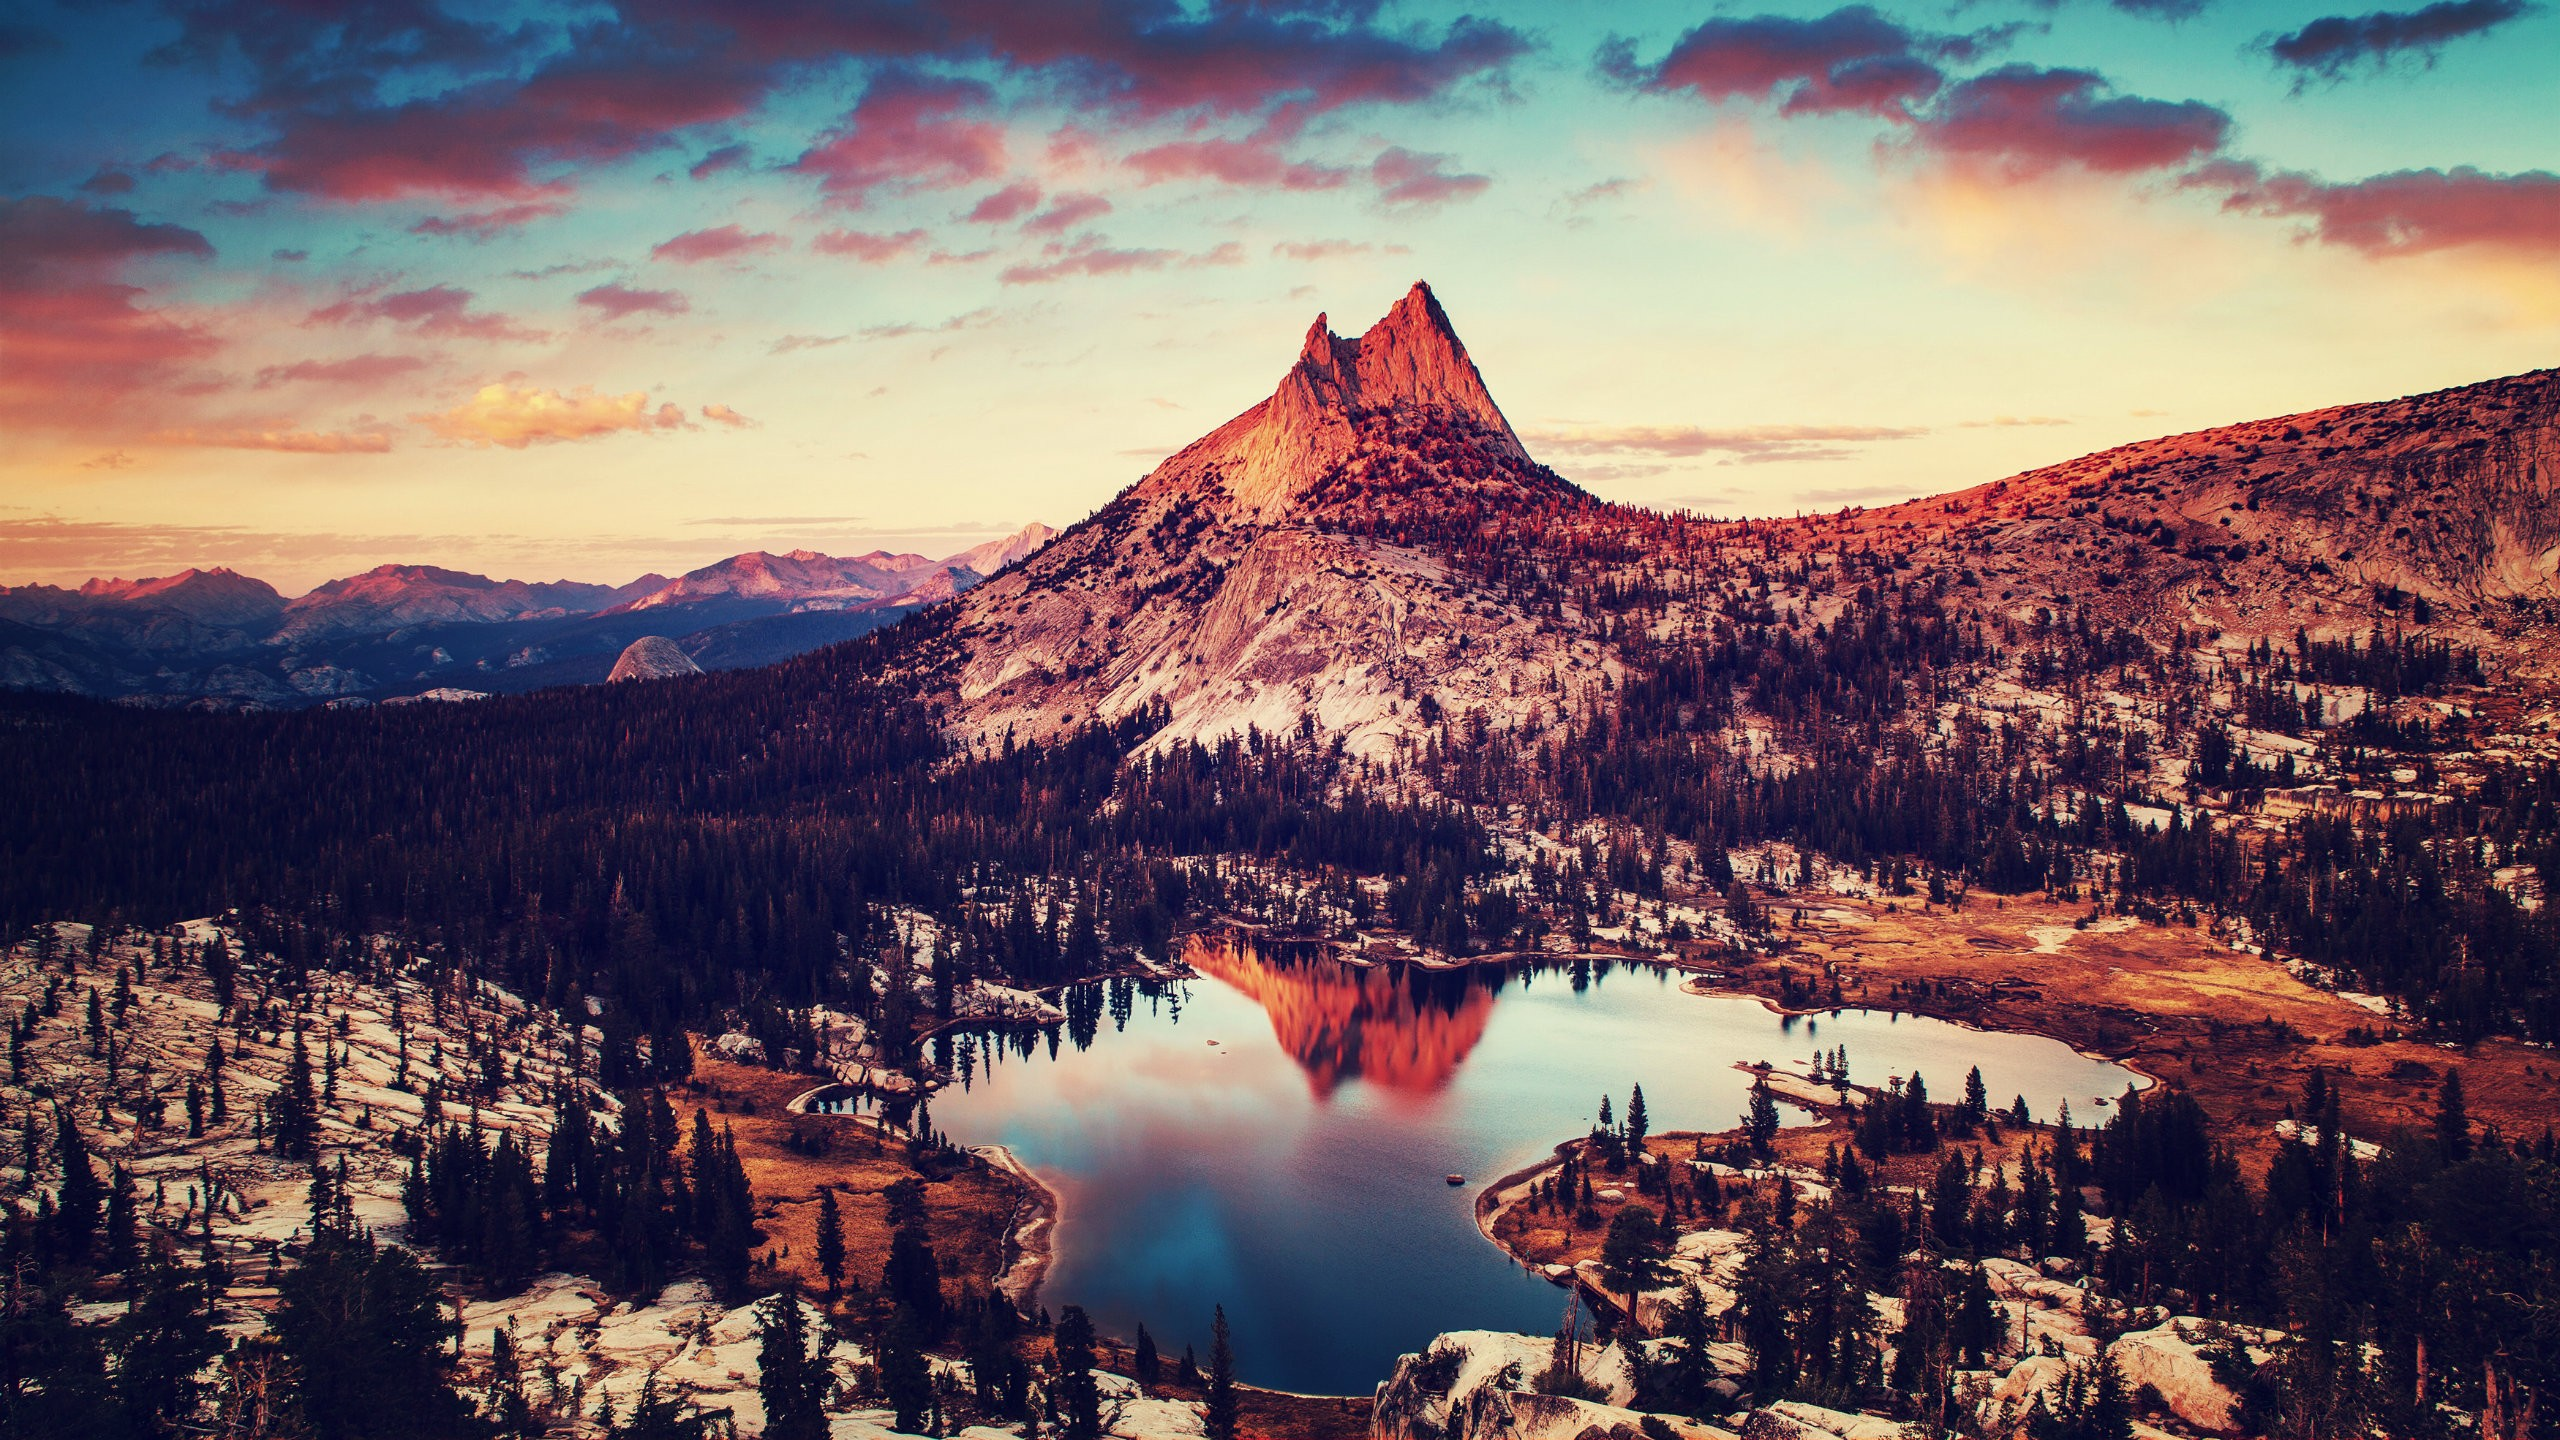 Hd wallpaper yosemite - 39 Yosemite National Park Hd Wallpapers Backgrounds Wallpaper Abyss